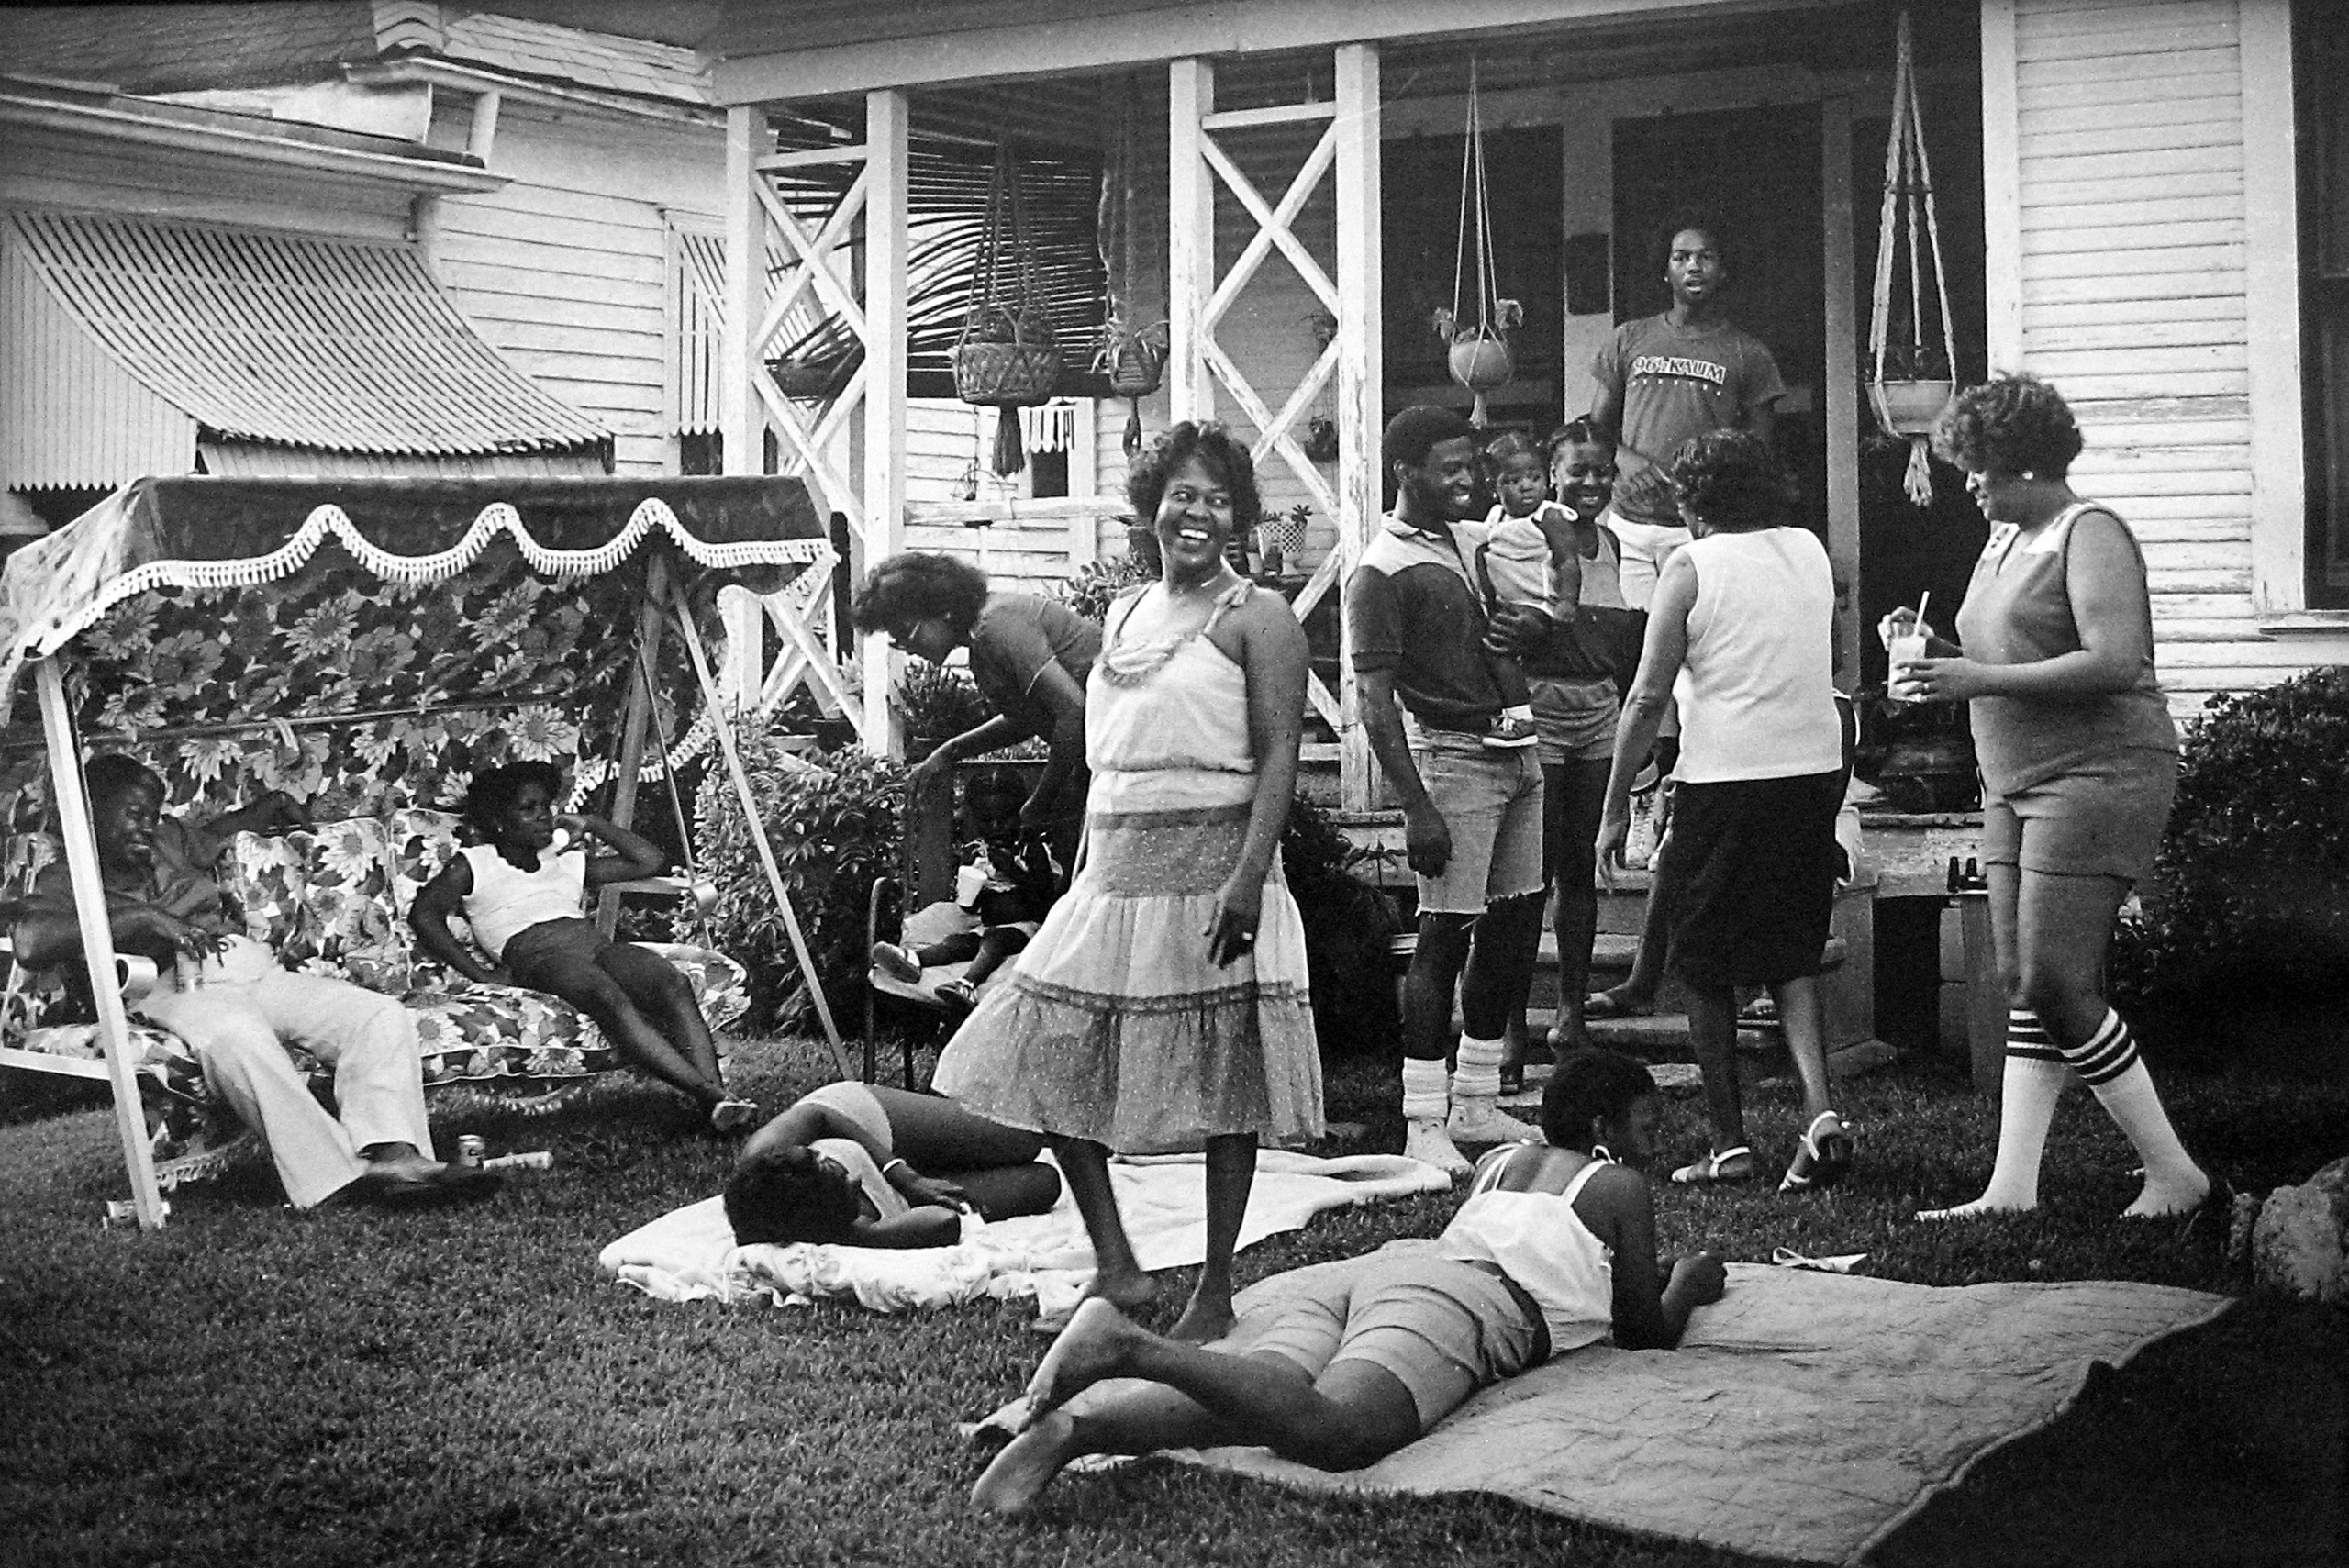 Fourth of July, 4th Ward, Houston, TX, 1980